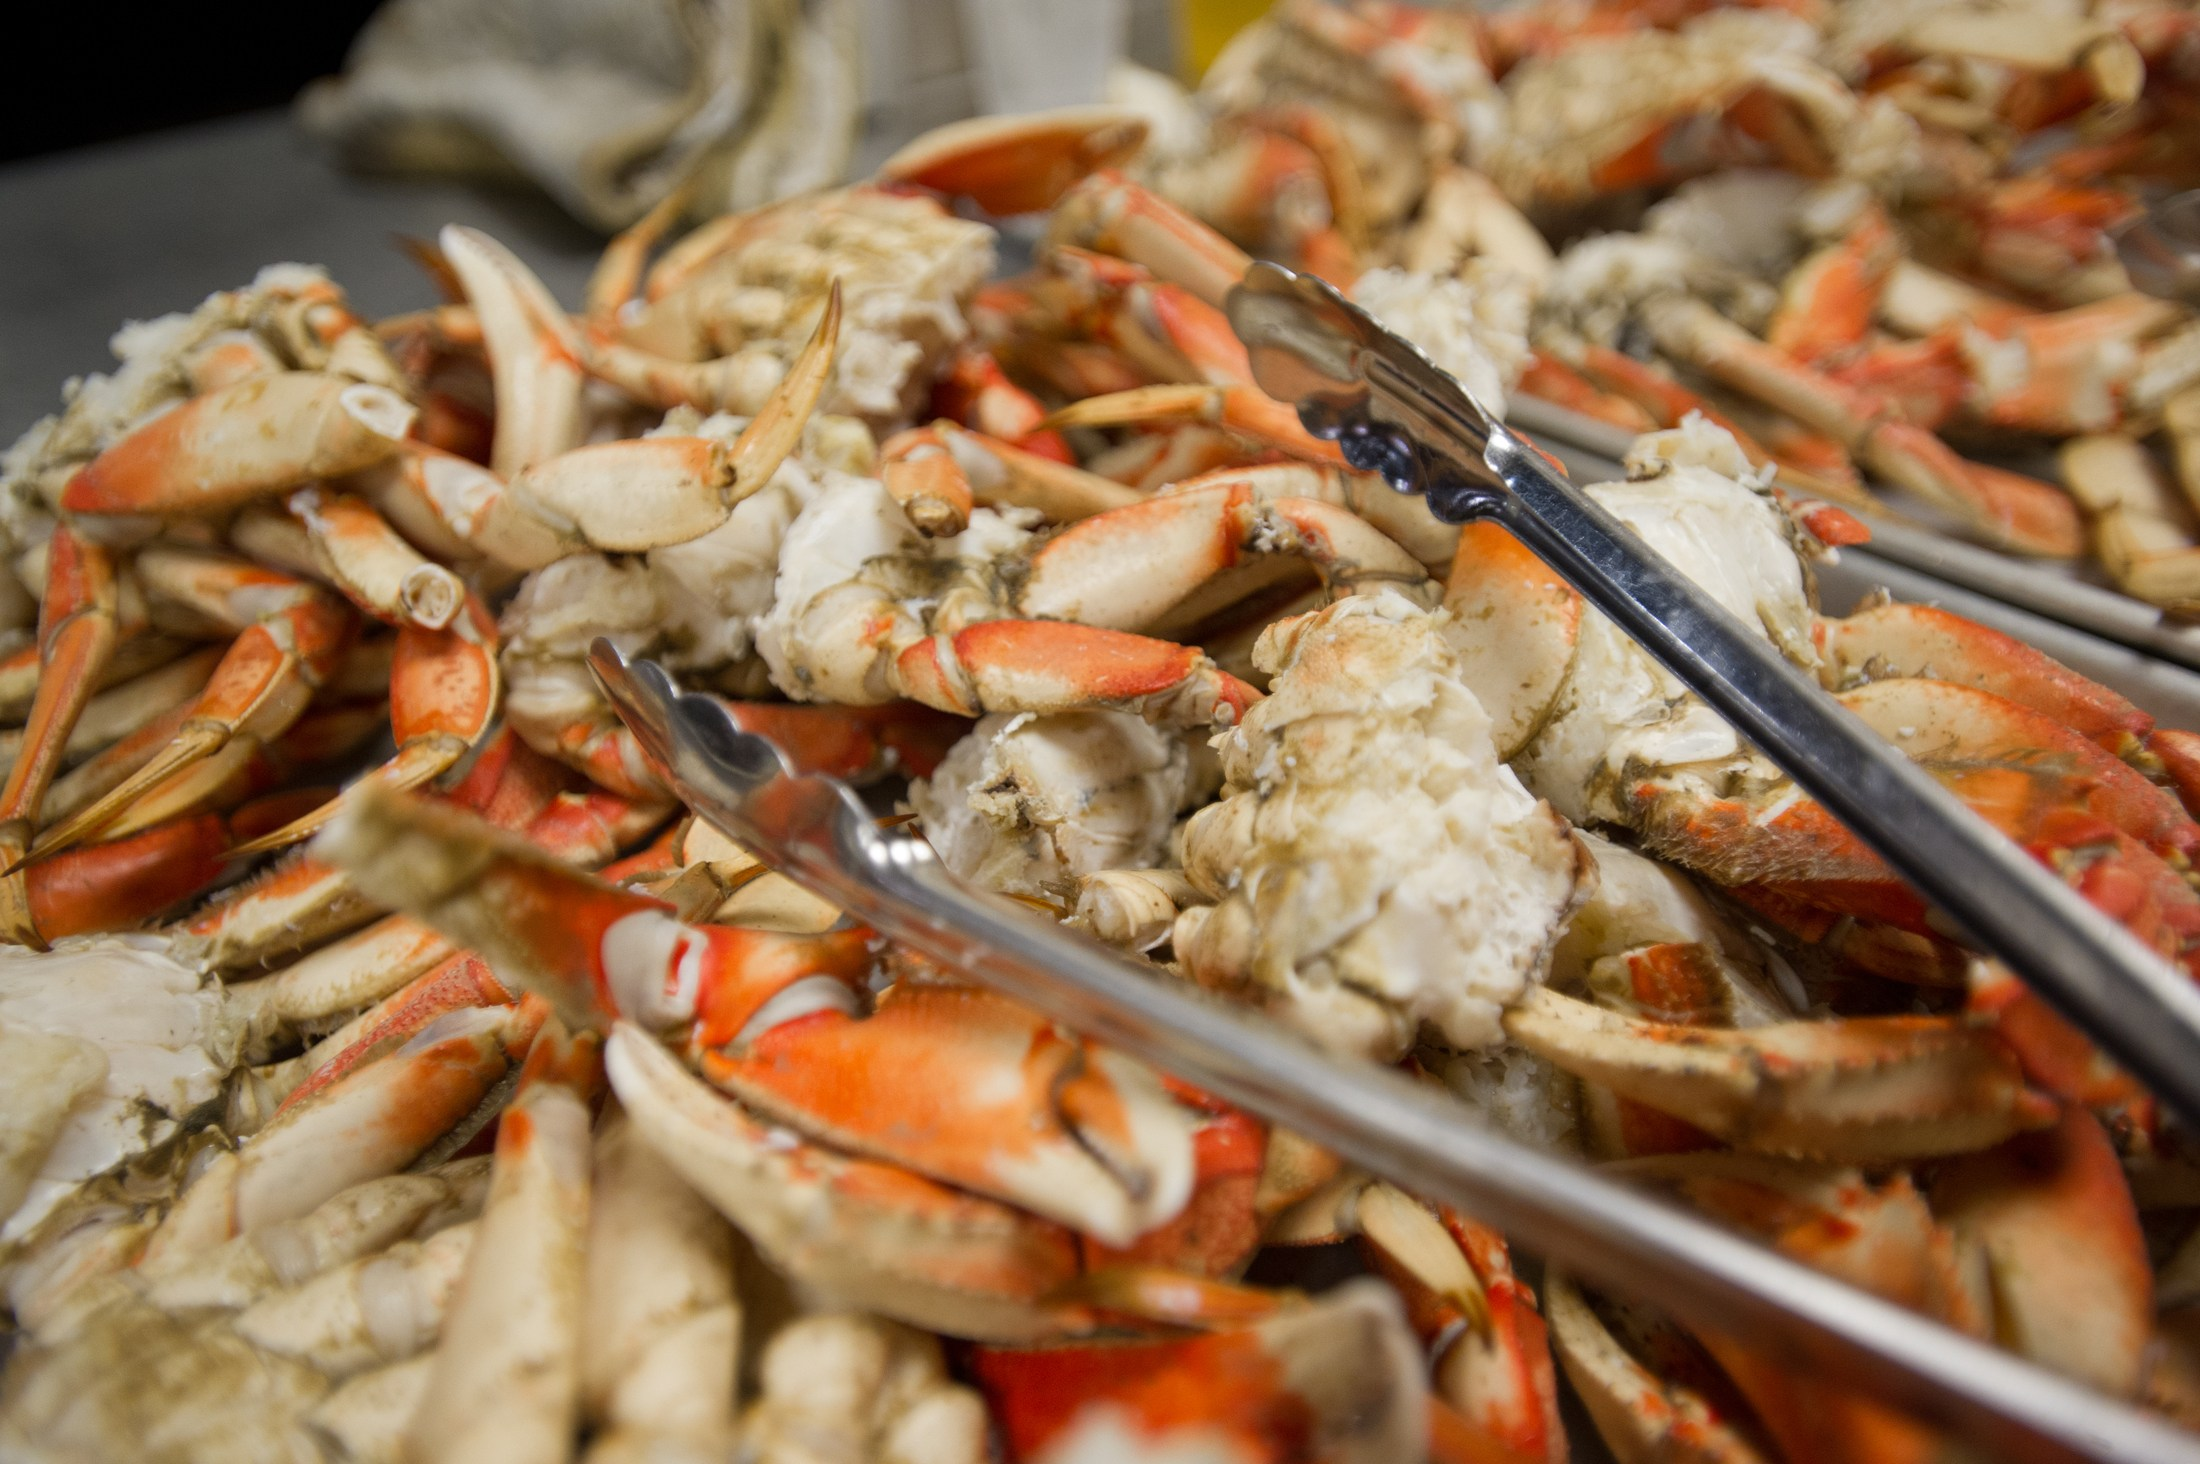 October Fest - Crab Feed